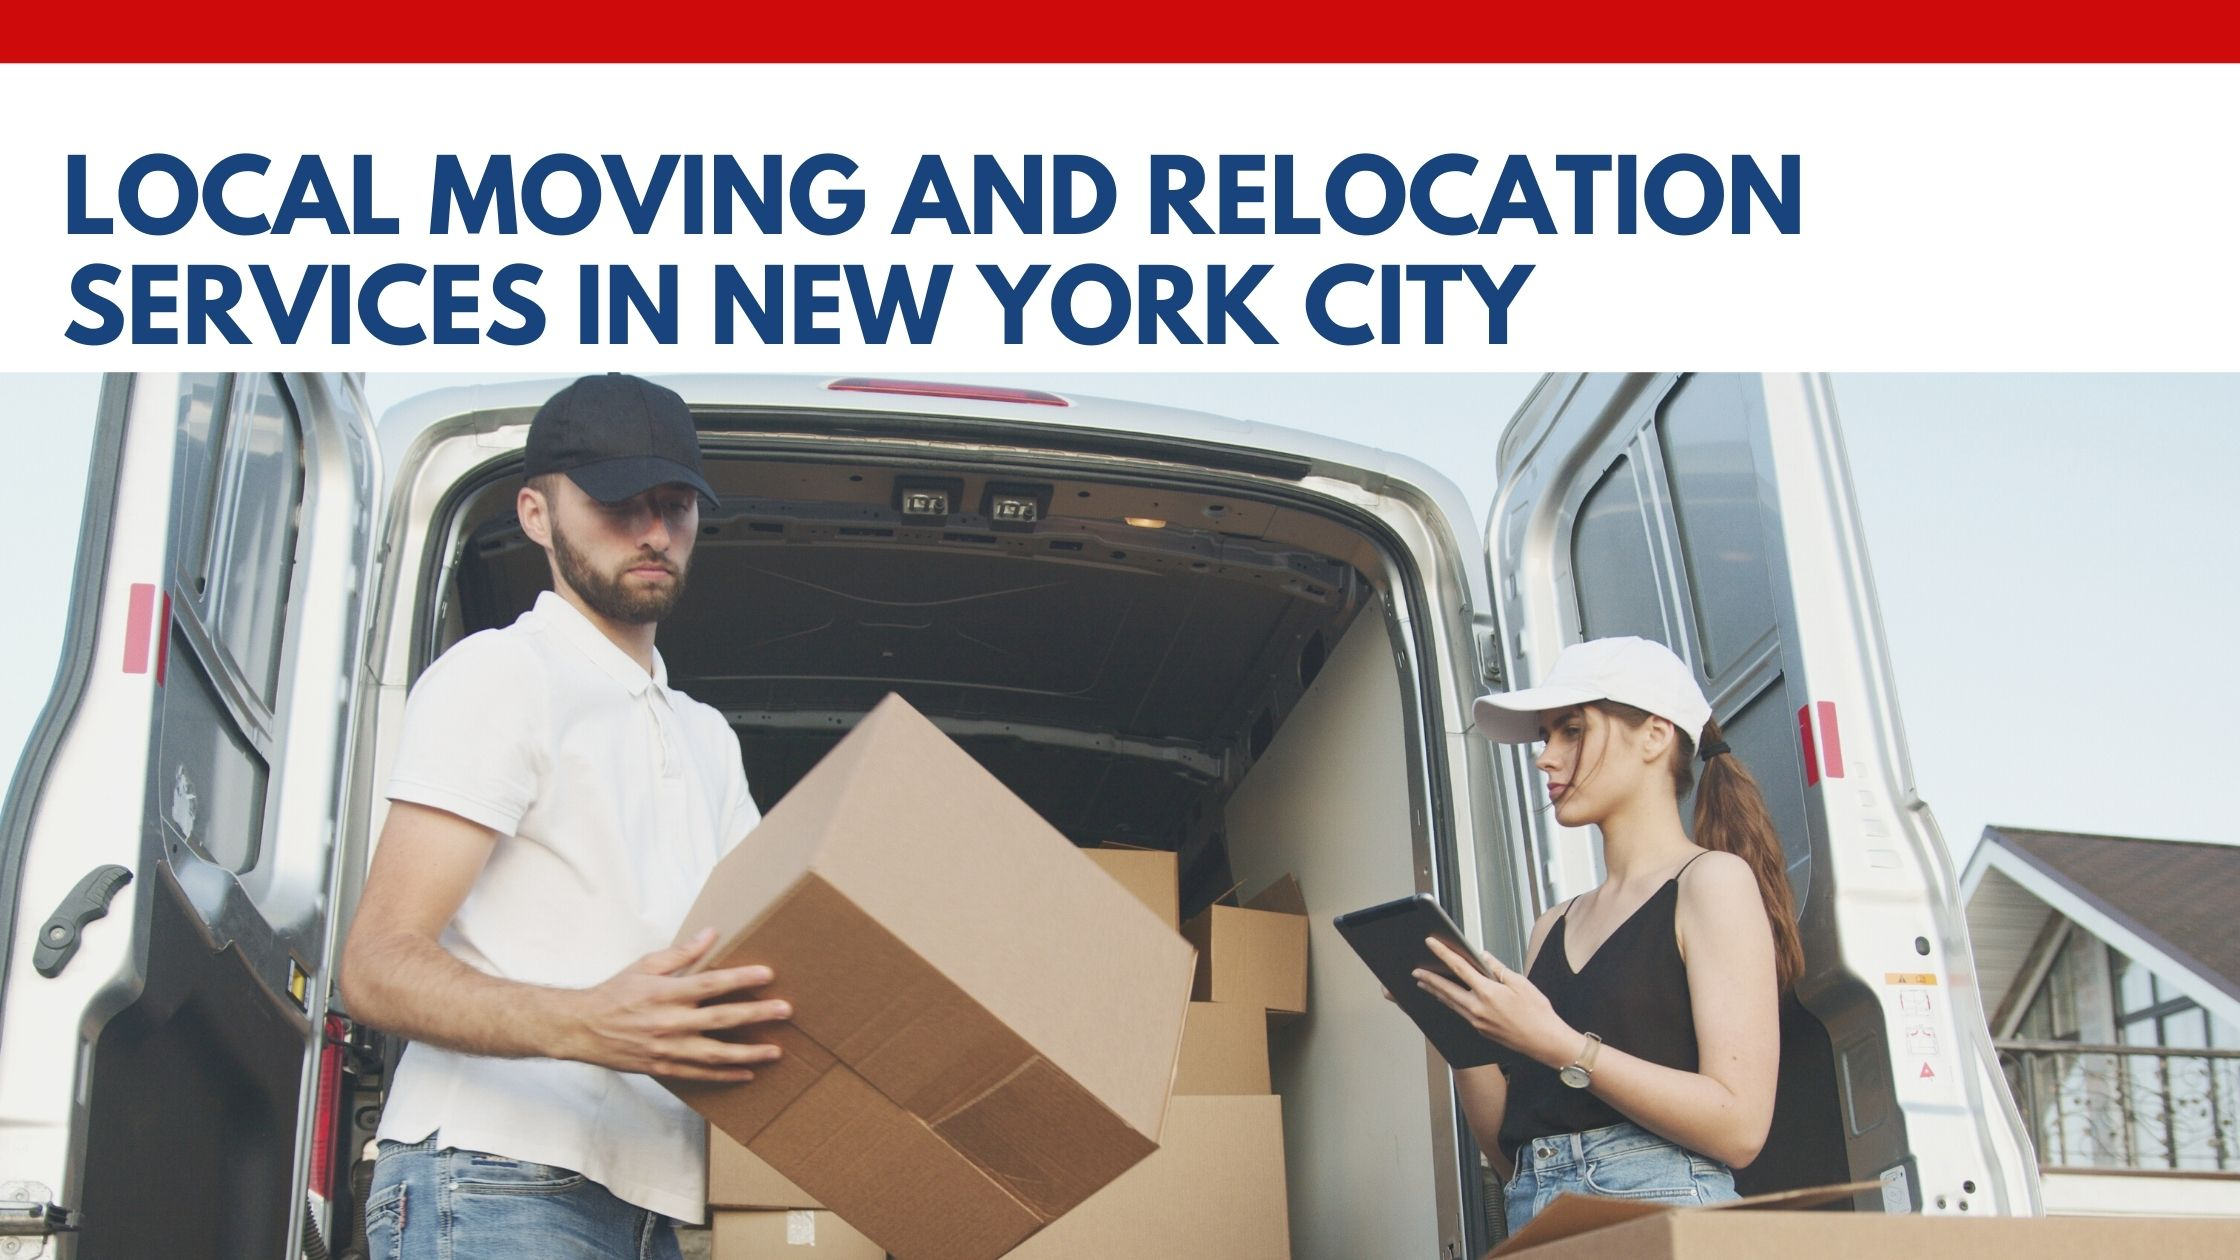 Local Moving and Relocation Services in New York City